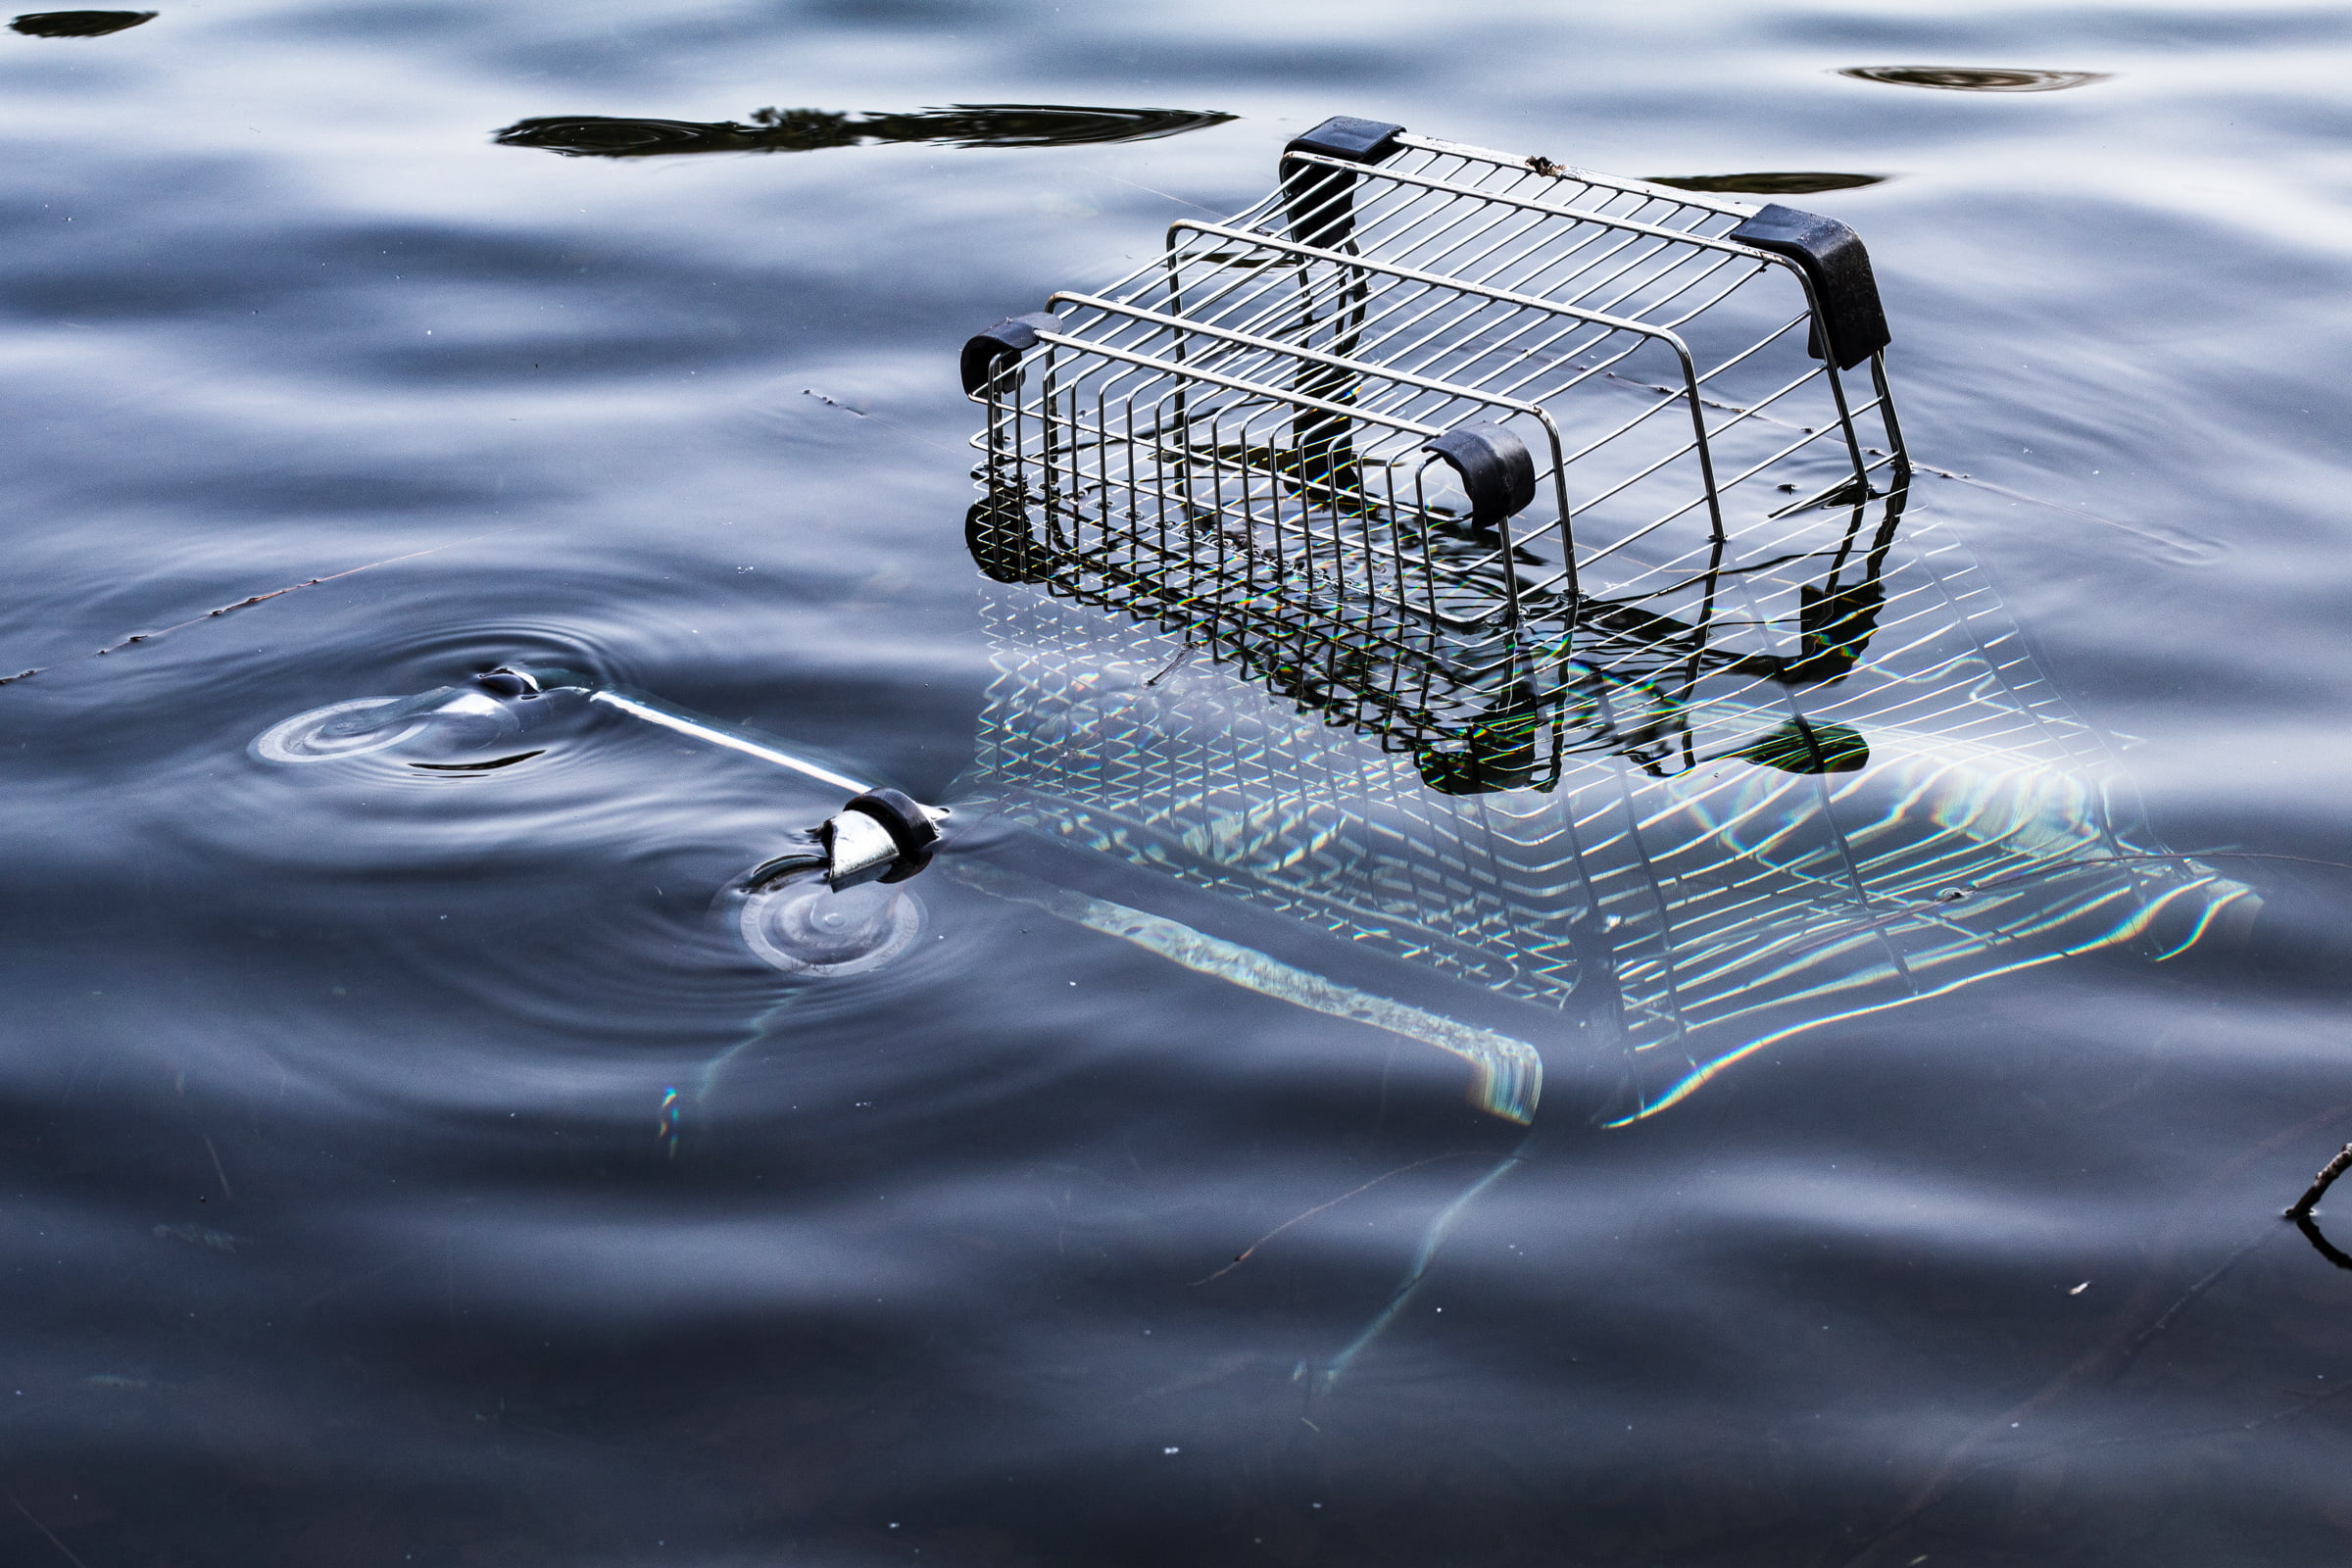 A shopping cart half submerged in a pond.